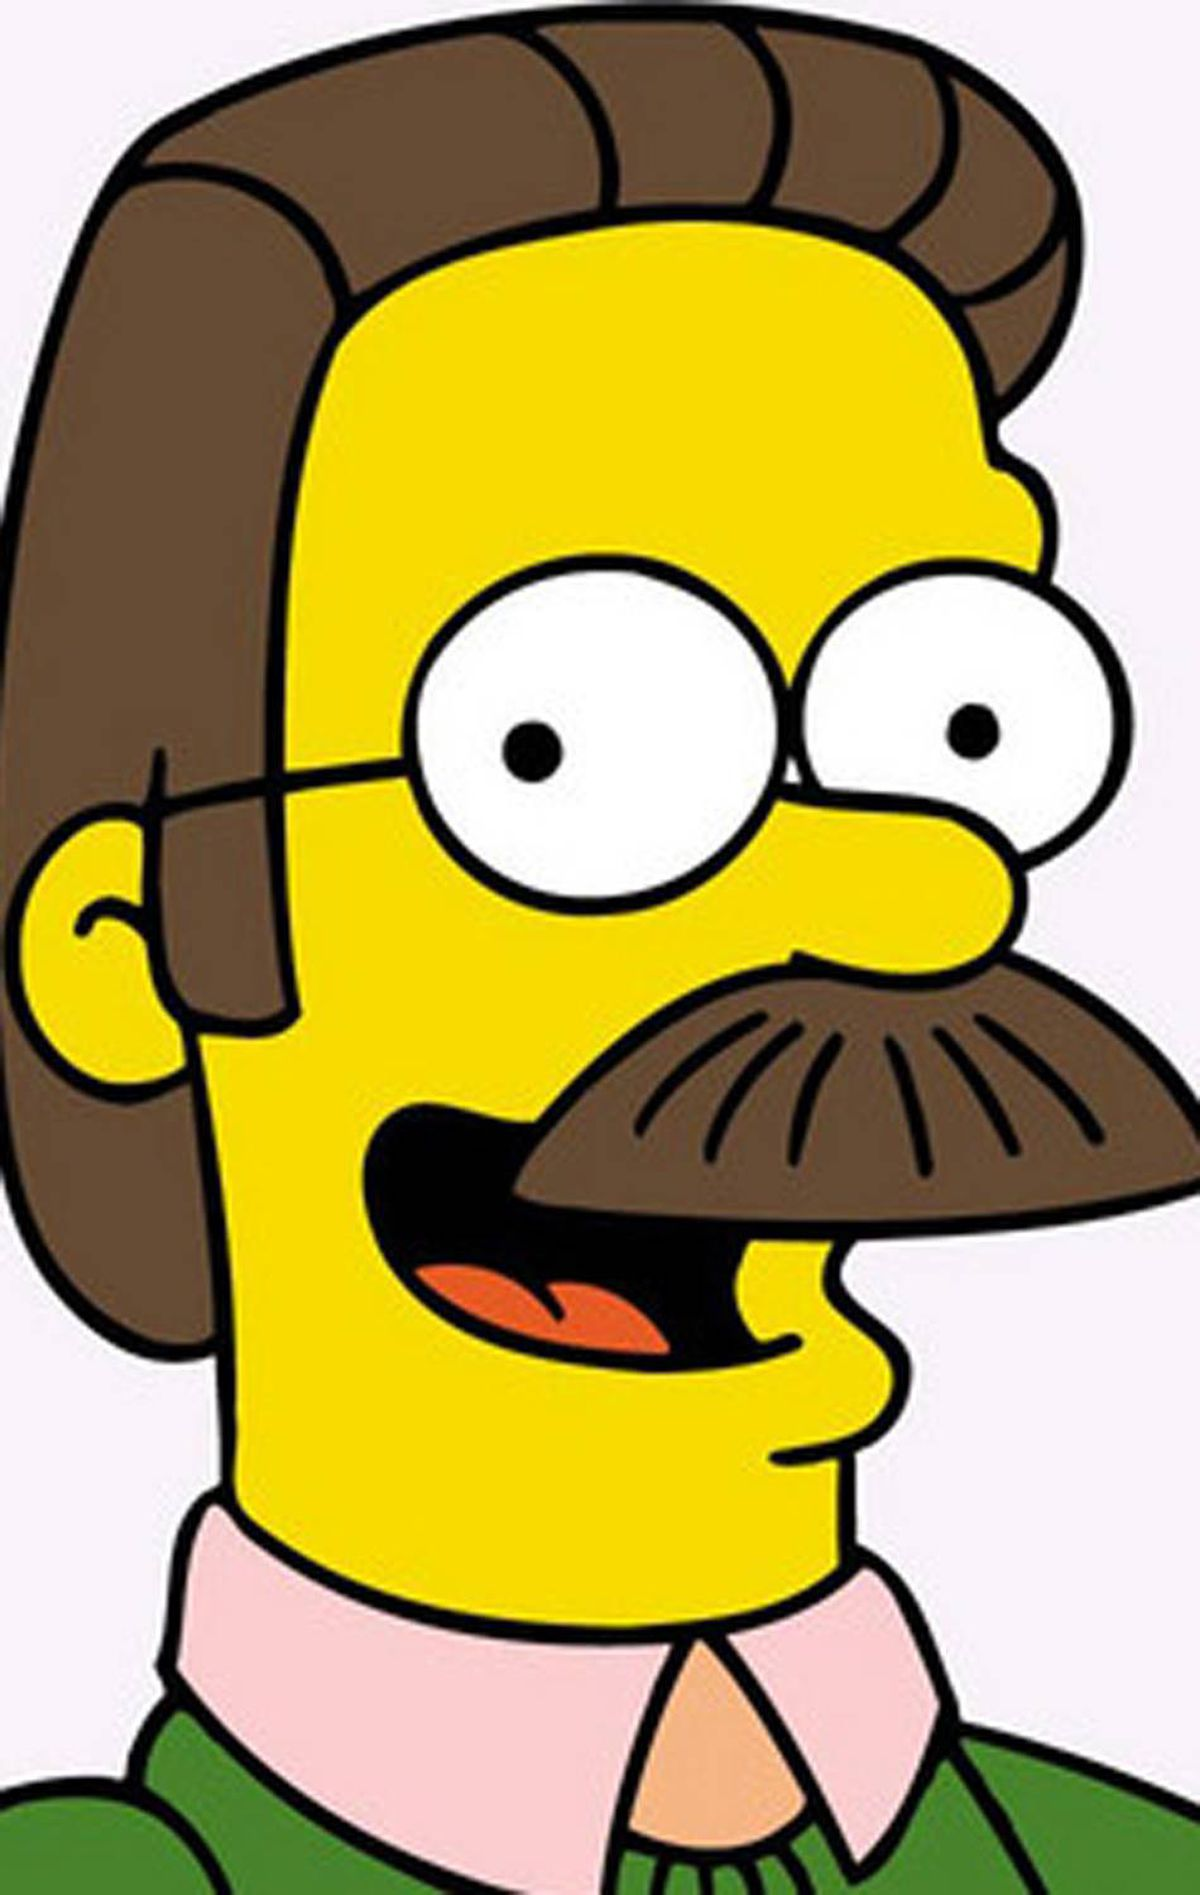 7. Ned Flanders He's sweet, caring and oh-so-neighbourly. But there's something we just don't trust about Ned, and we're pretty sure it starts with that perfectly groomed moustache. Even on Ned Flanders, the stache adds swagger.